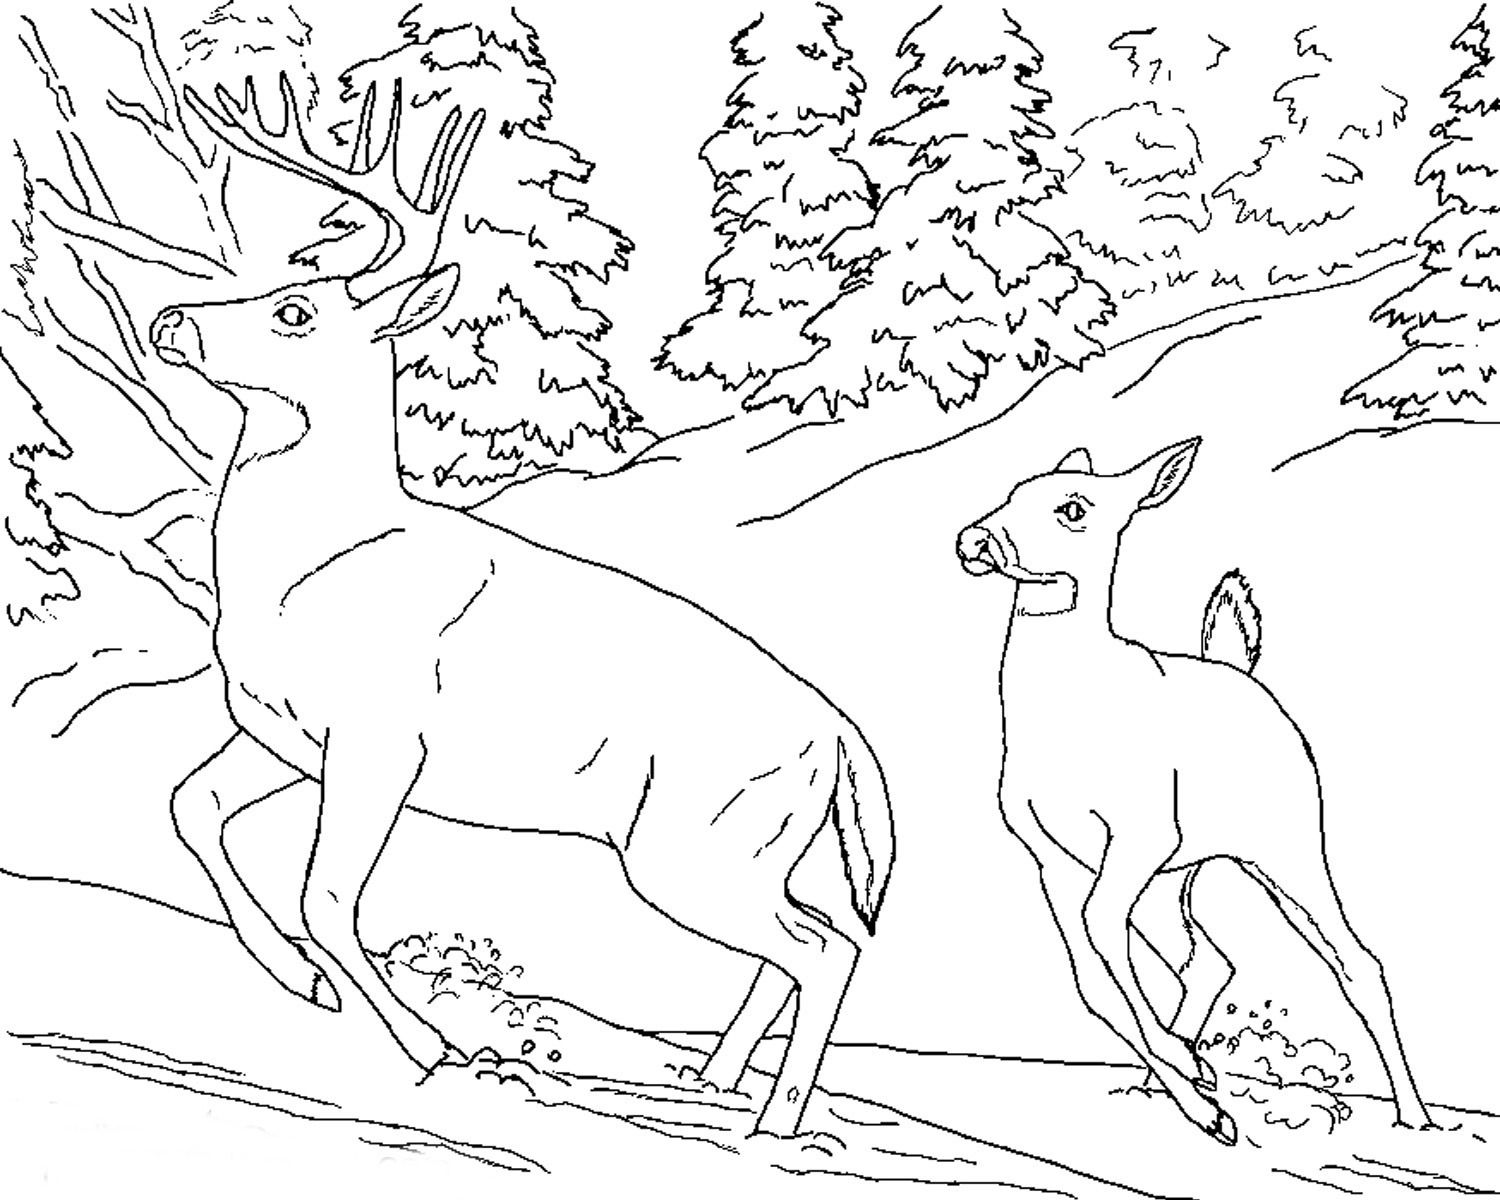 Coloring Pages Animals Realistic : Free realistic animal coloring pages